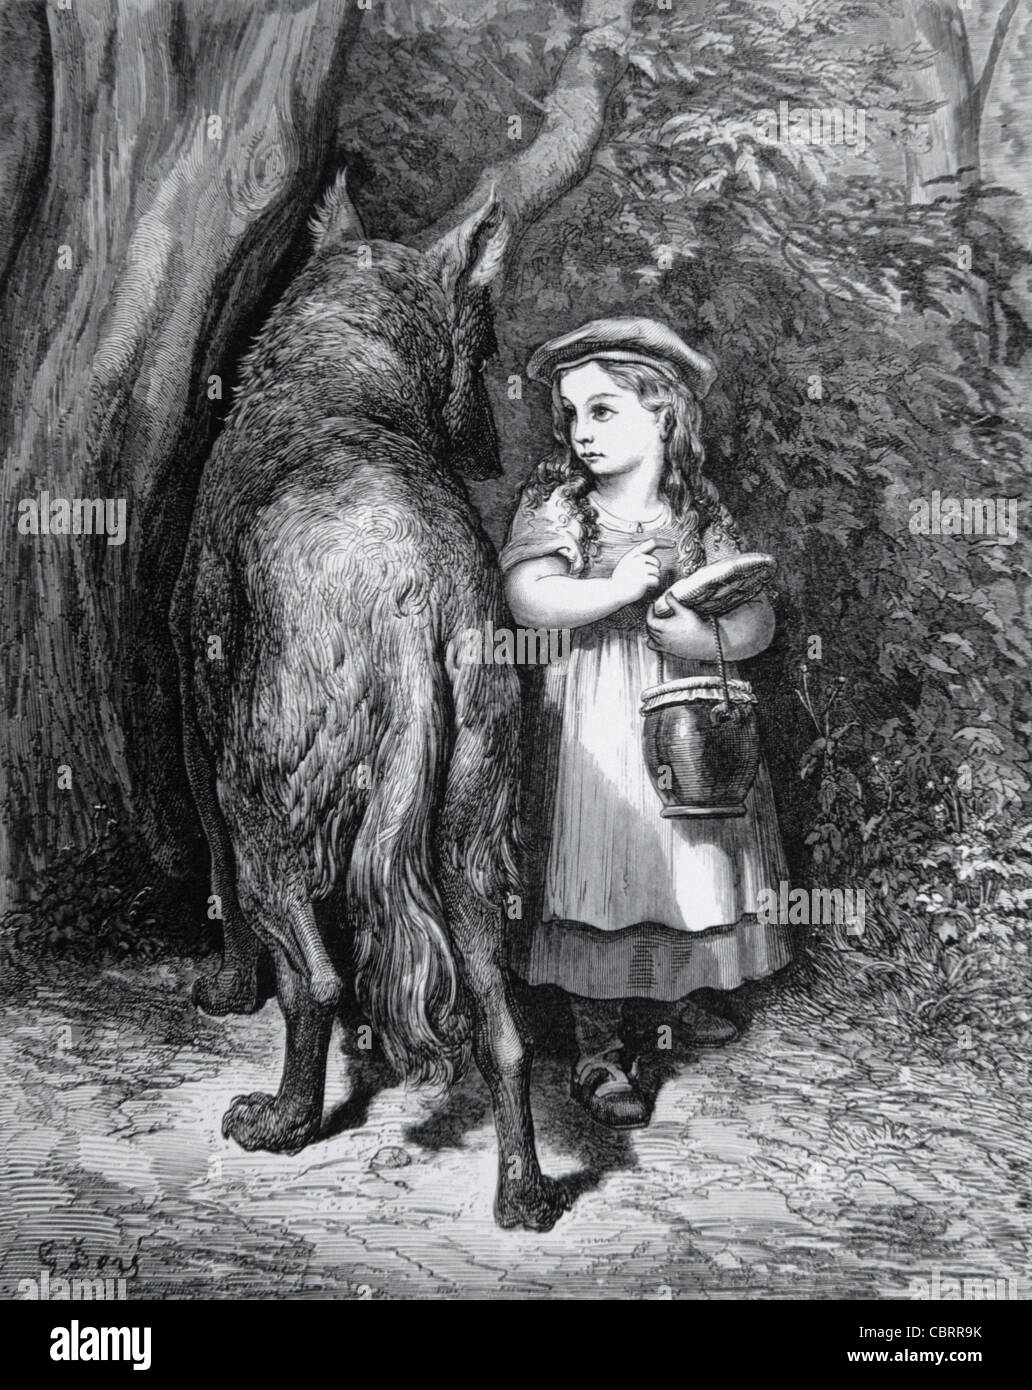 Little Red Riding Hood & the Big Bad Wolf, Engraving by Gustave Doré, 1862 - Stock Image